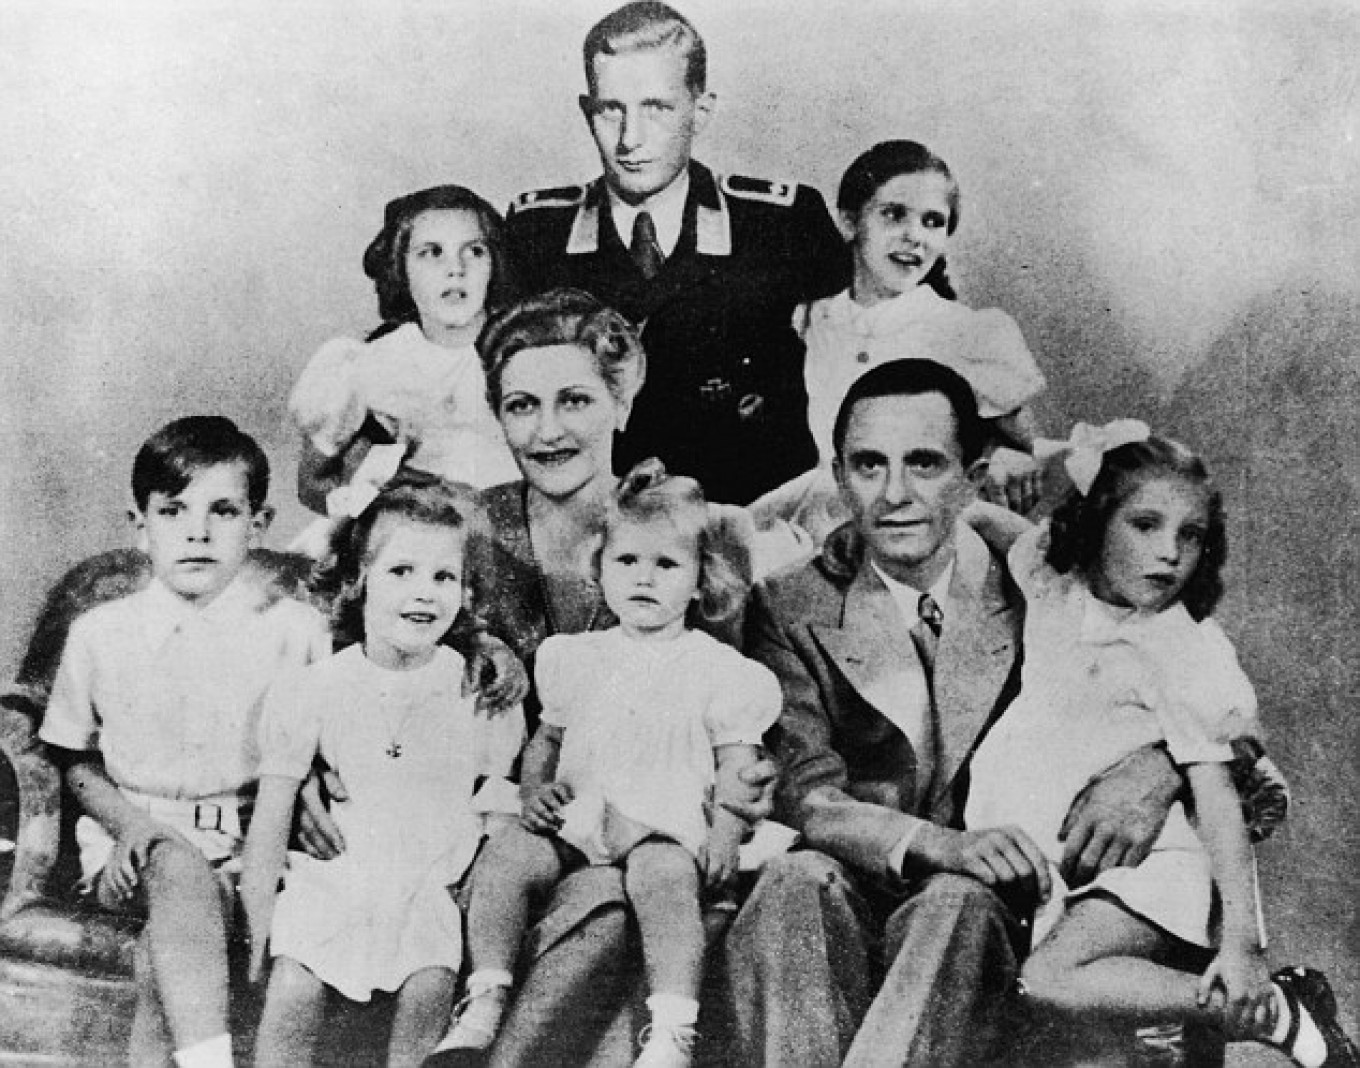 Joseph Goebbels with his wife Magda and their children, who suffered a sad fate.